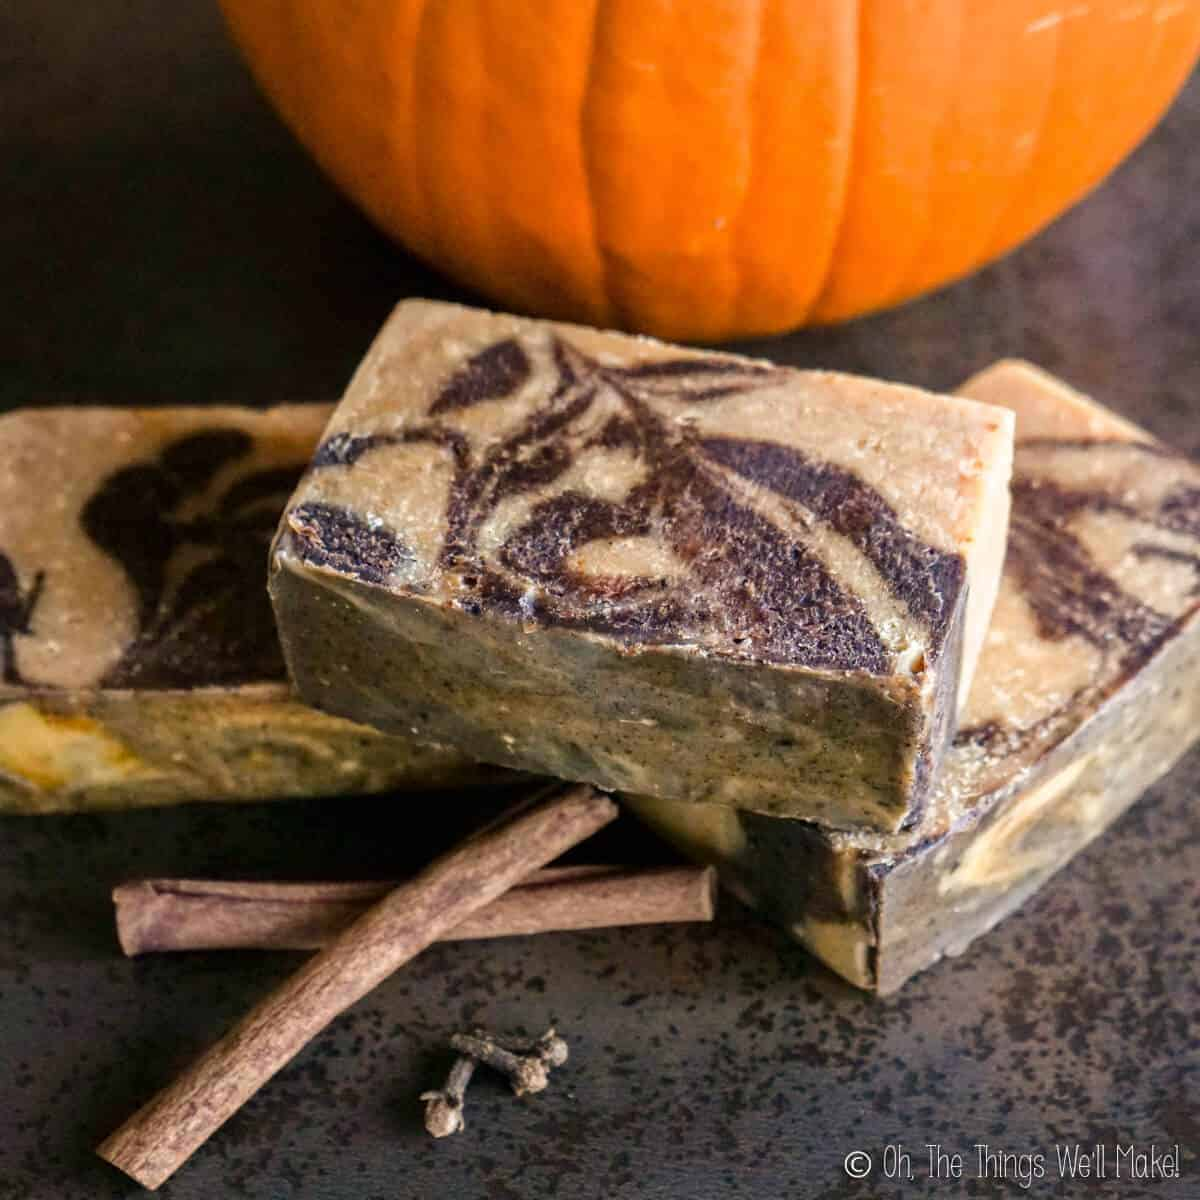 Overhead view of 3 bars of pumpkin spice soap surrounded by dried spices and a pumpkin